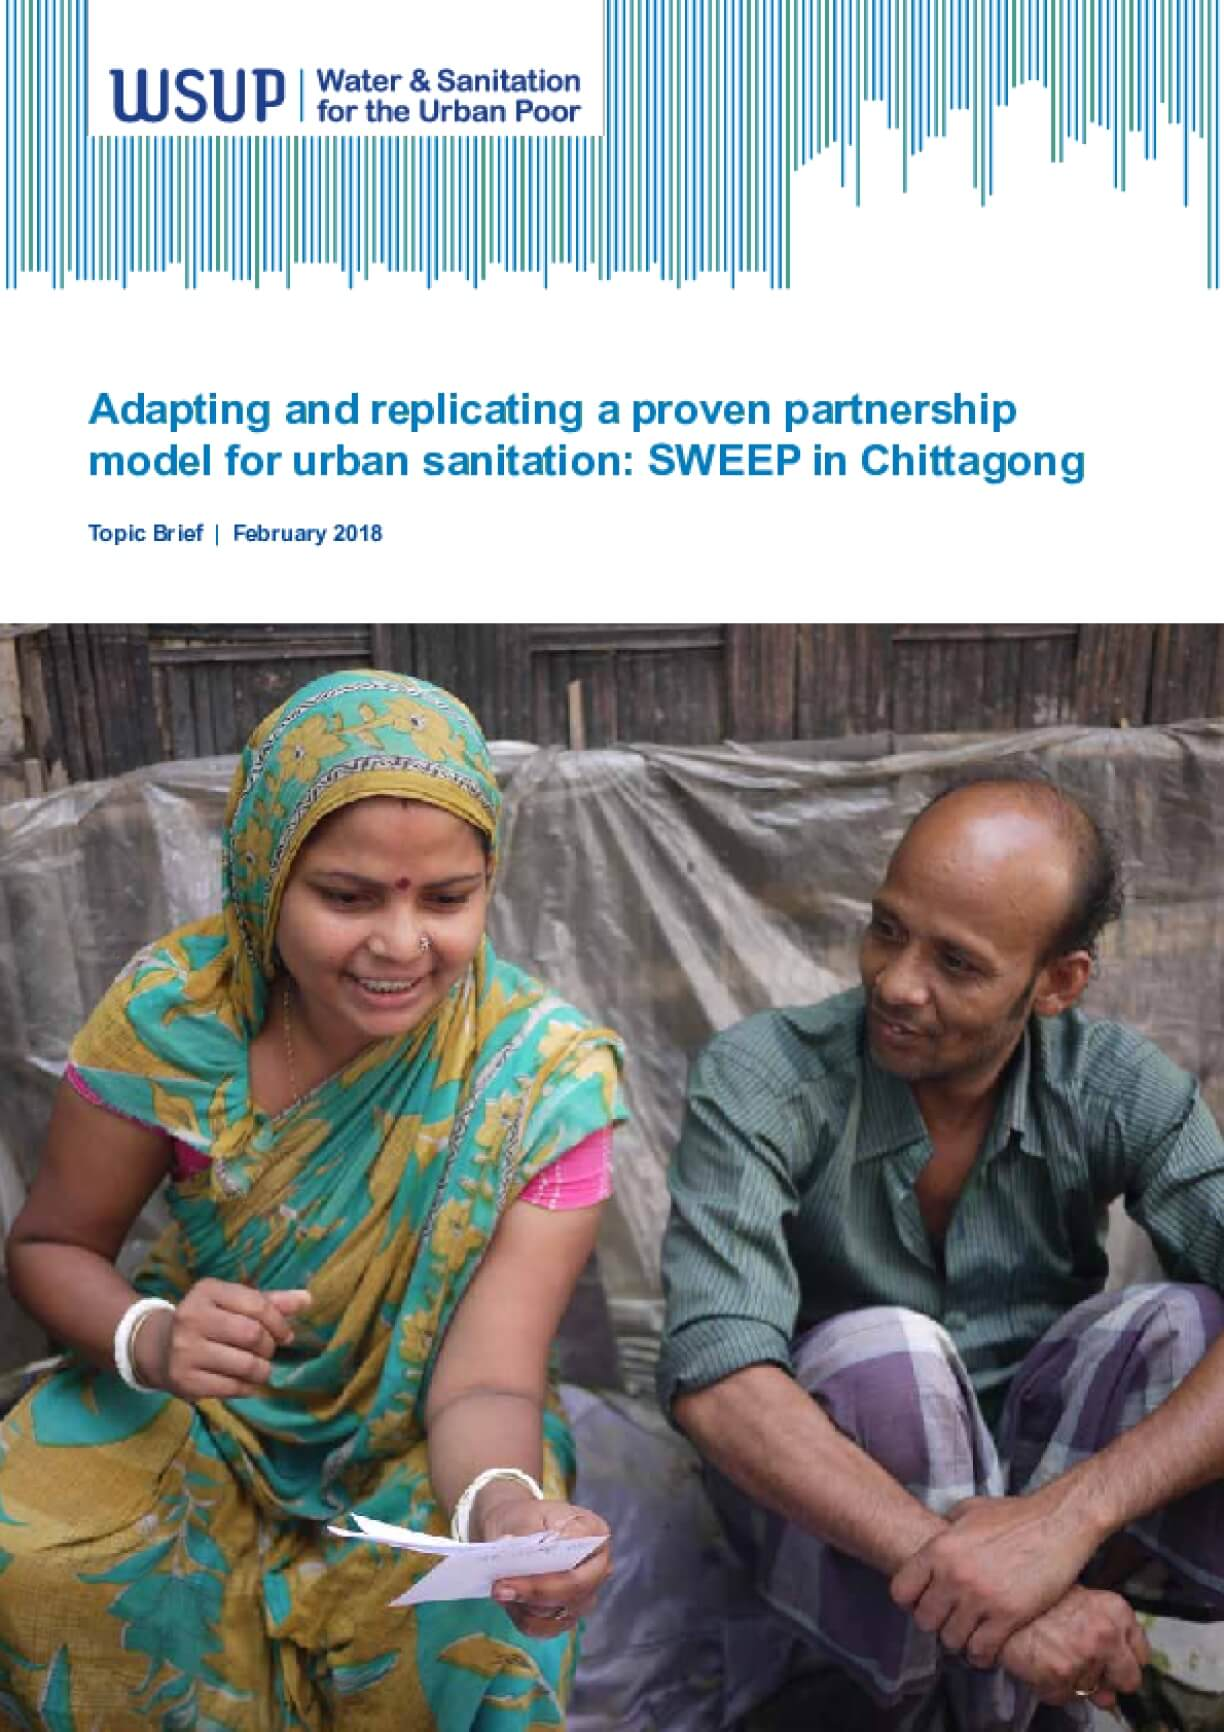 Adapting and replicating a proven partnership model for urban sanitation: SWEEP in Chittagong